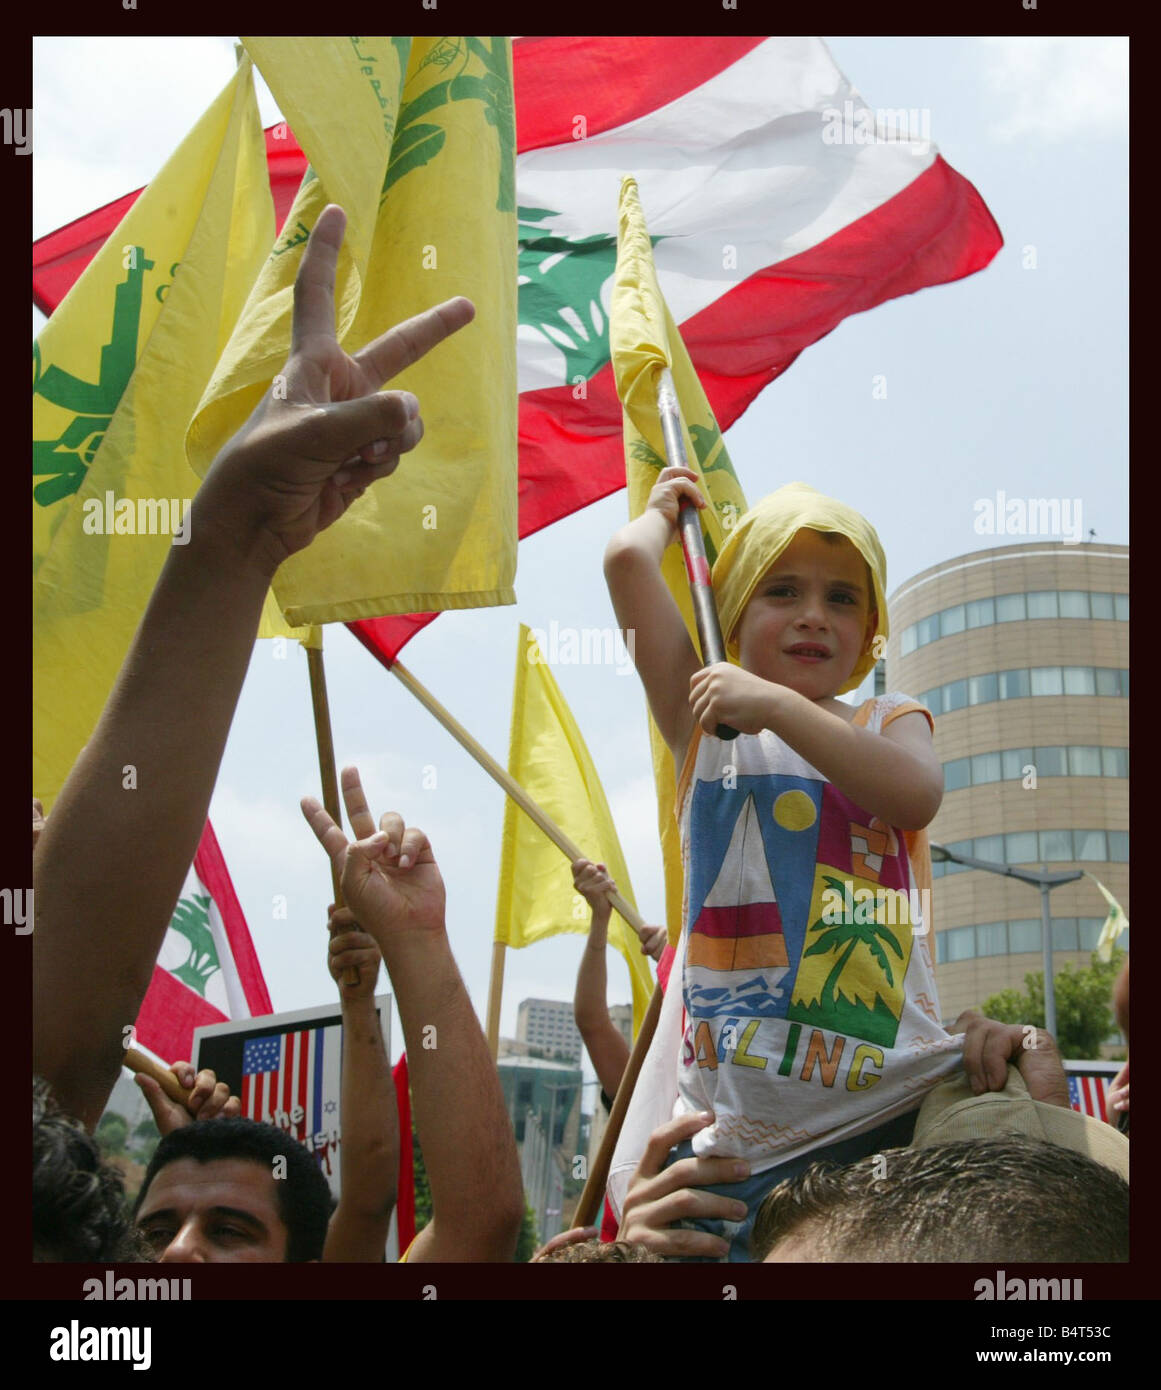 United Nations building in Beirut Lebanon July 2006 Hezbollah supporters furious over an Israeli airstrike in Qana - Stock Image